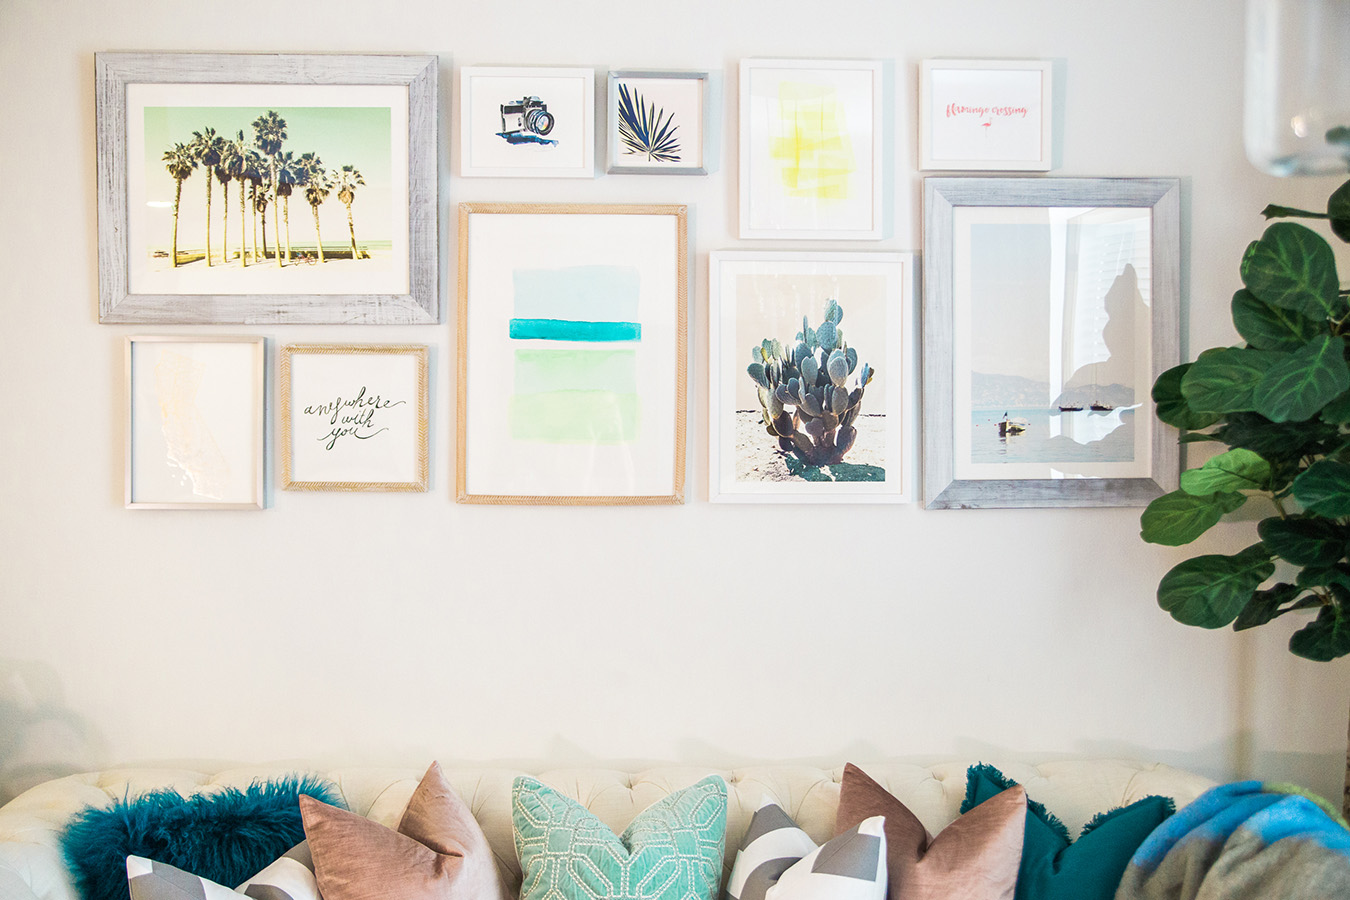 Breath creativity into your living room design ideas with a gallery art wall.